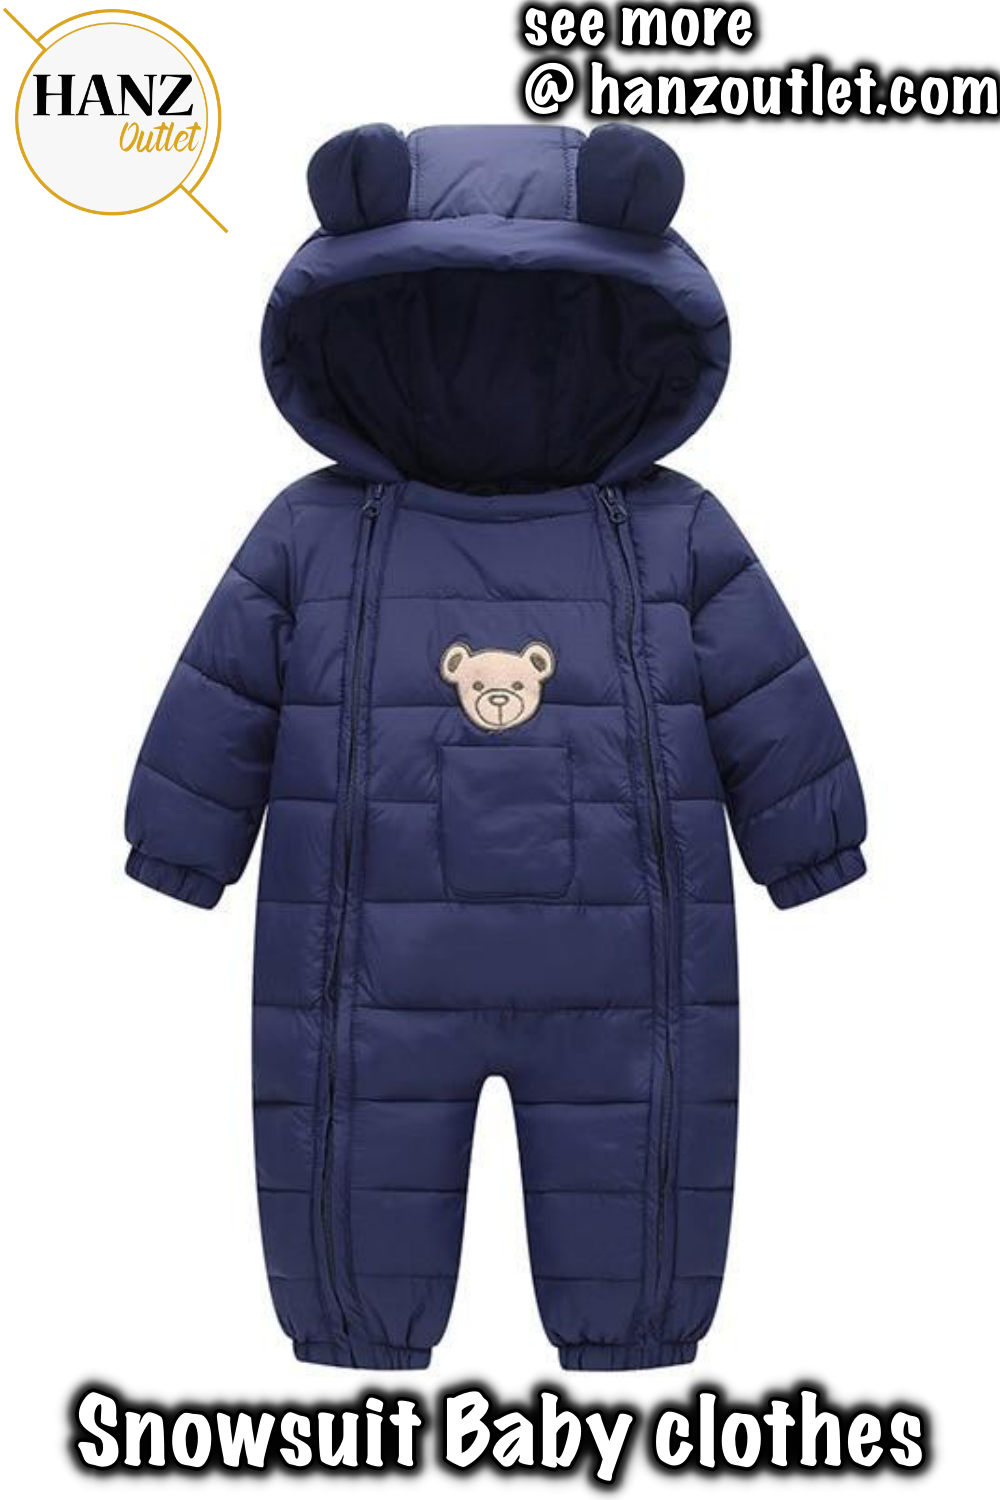 8457dcbbe0984 Snowsuit Baby clothes Snow wear Cotton Padded One Piece Warm Outerwear  Overalls Romper Kids Winter Jumpsuit Newborn Parkas  Snowsuit  BabySnowsuit   clothes ...